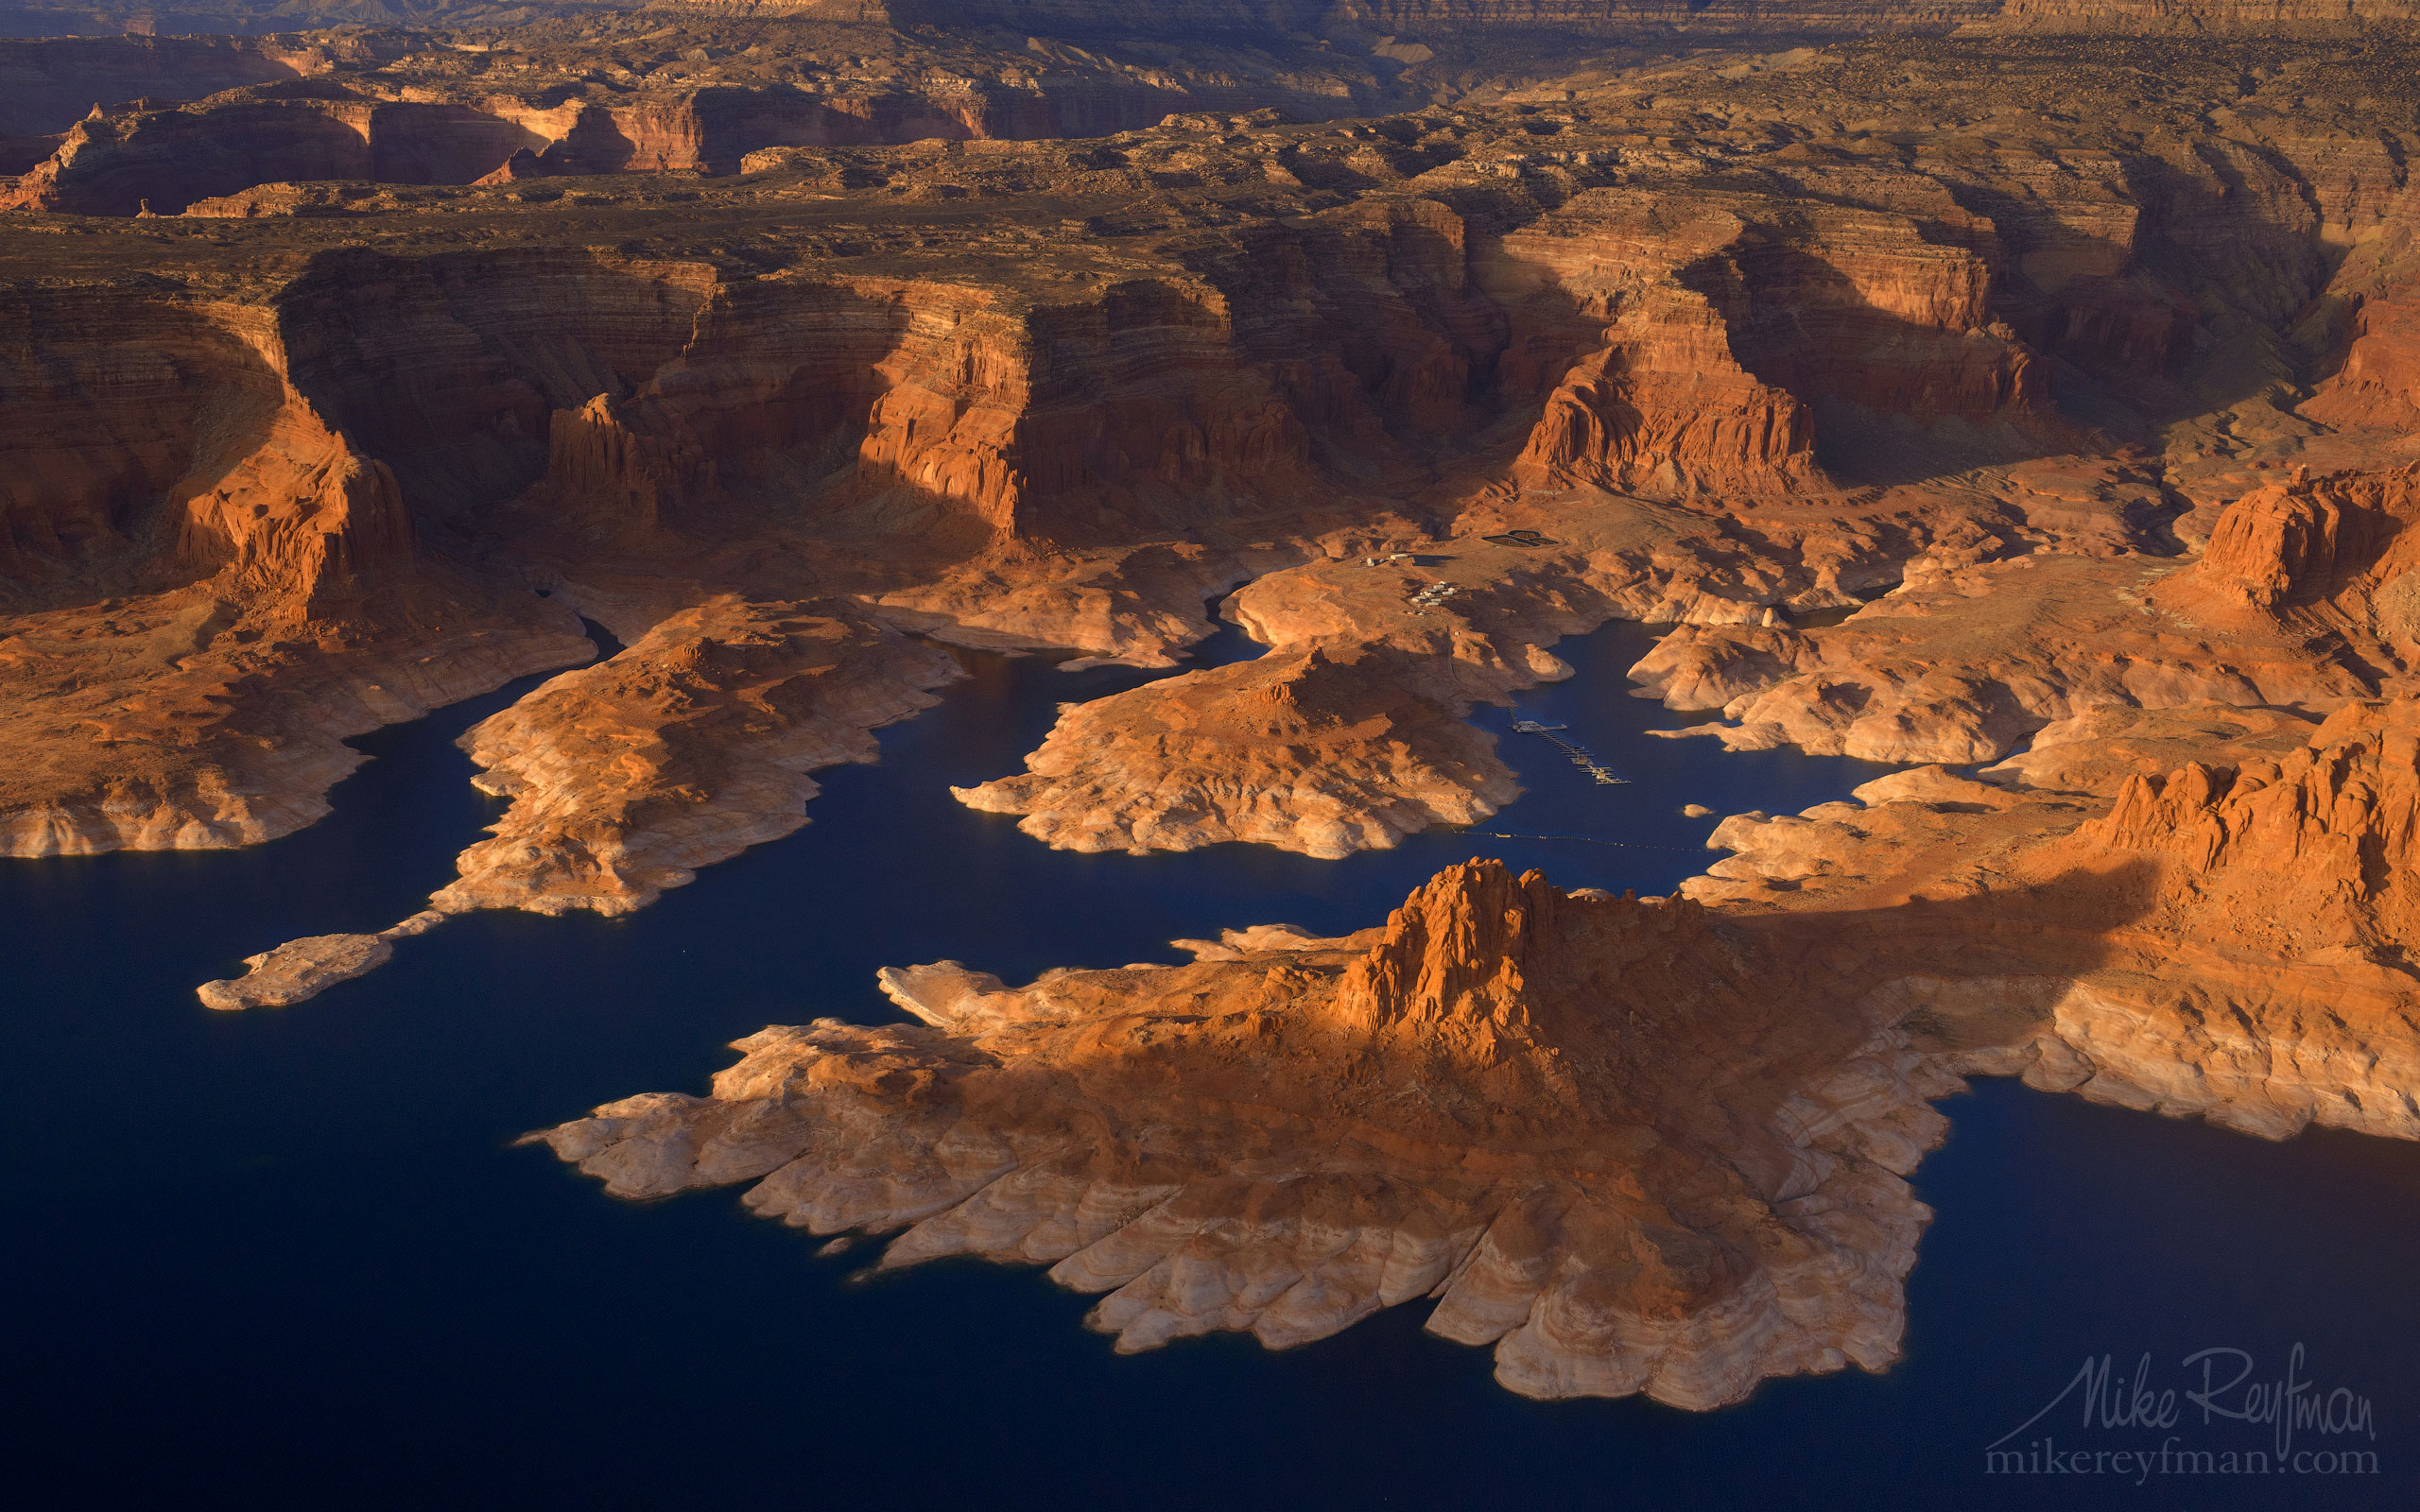 Lake Powell, Glen Canyon NRA, Utah/Arizona, USA. Aerial. 036-LP3_D8C9417.jpg - Lake Powell, Glen Canyon NAR. Colorado and Sun Juan Rivers. Utah/Arizona, USA  - Mike Reyfman Photography